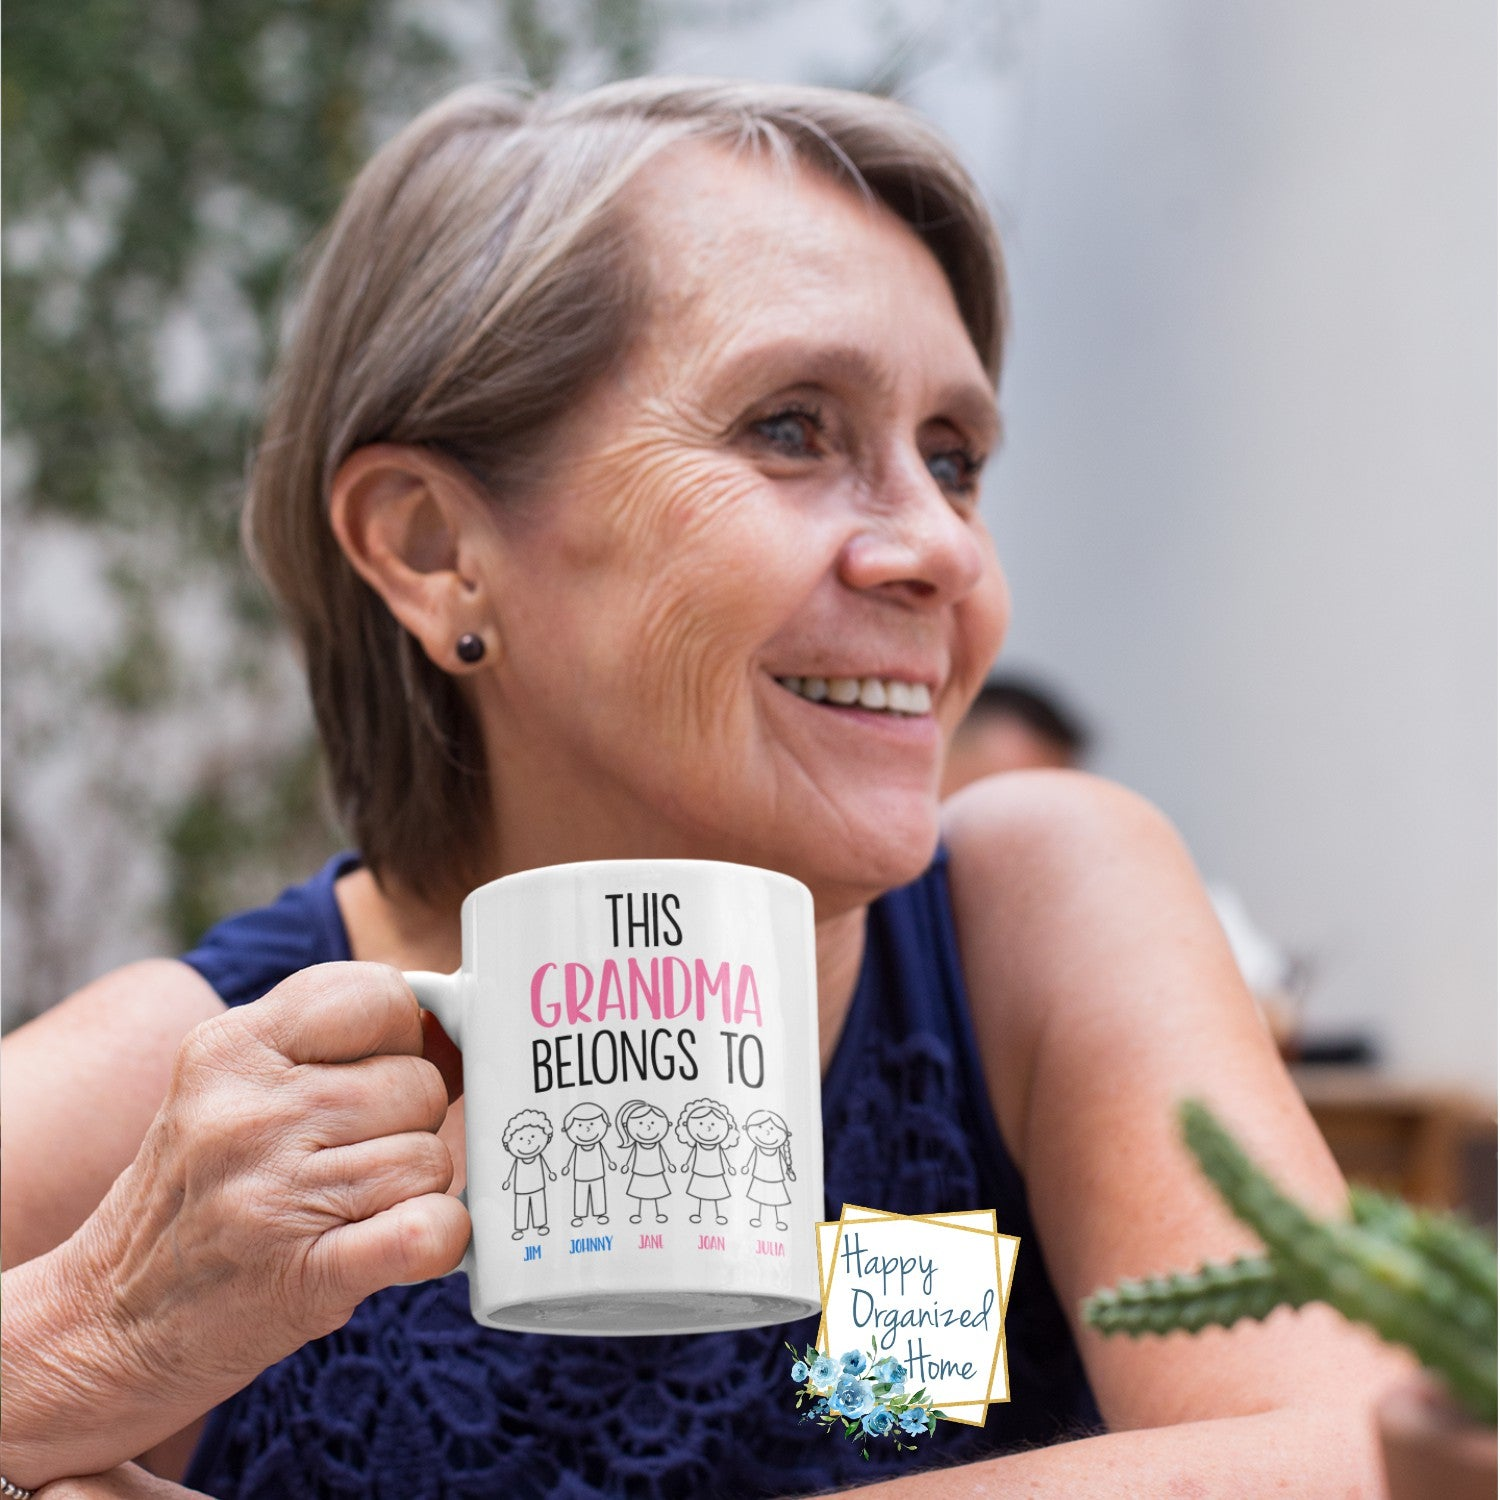 This Grandparent Belongs to Personalized Mugs - 14 Grand Children